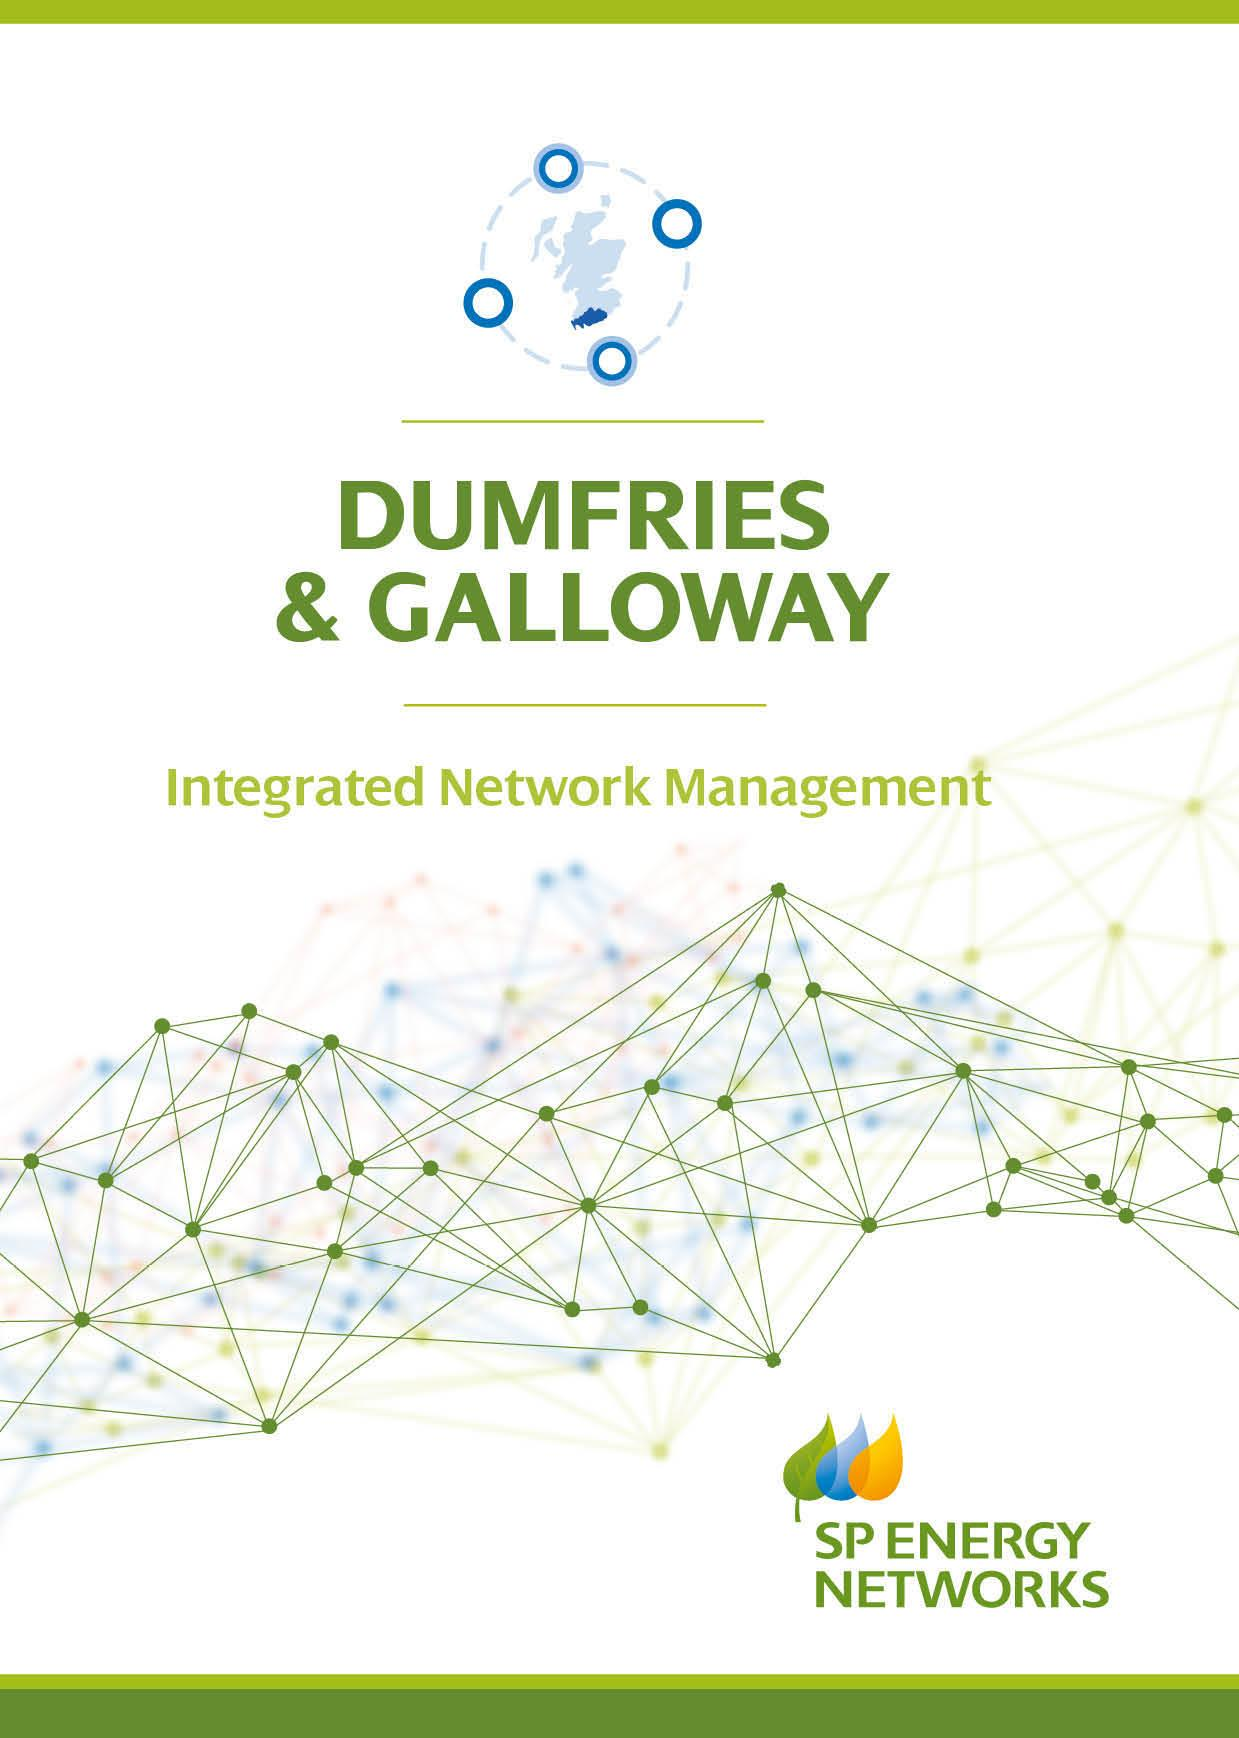 Dumfries and Galloway Fact Card Visual Version